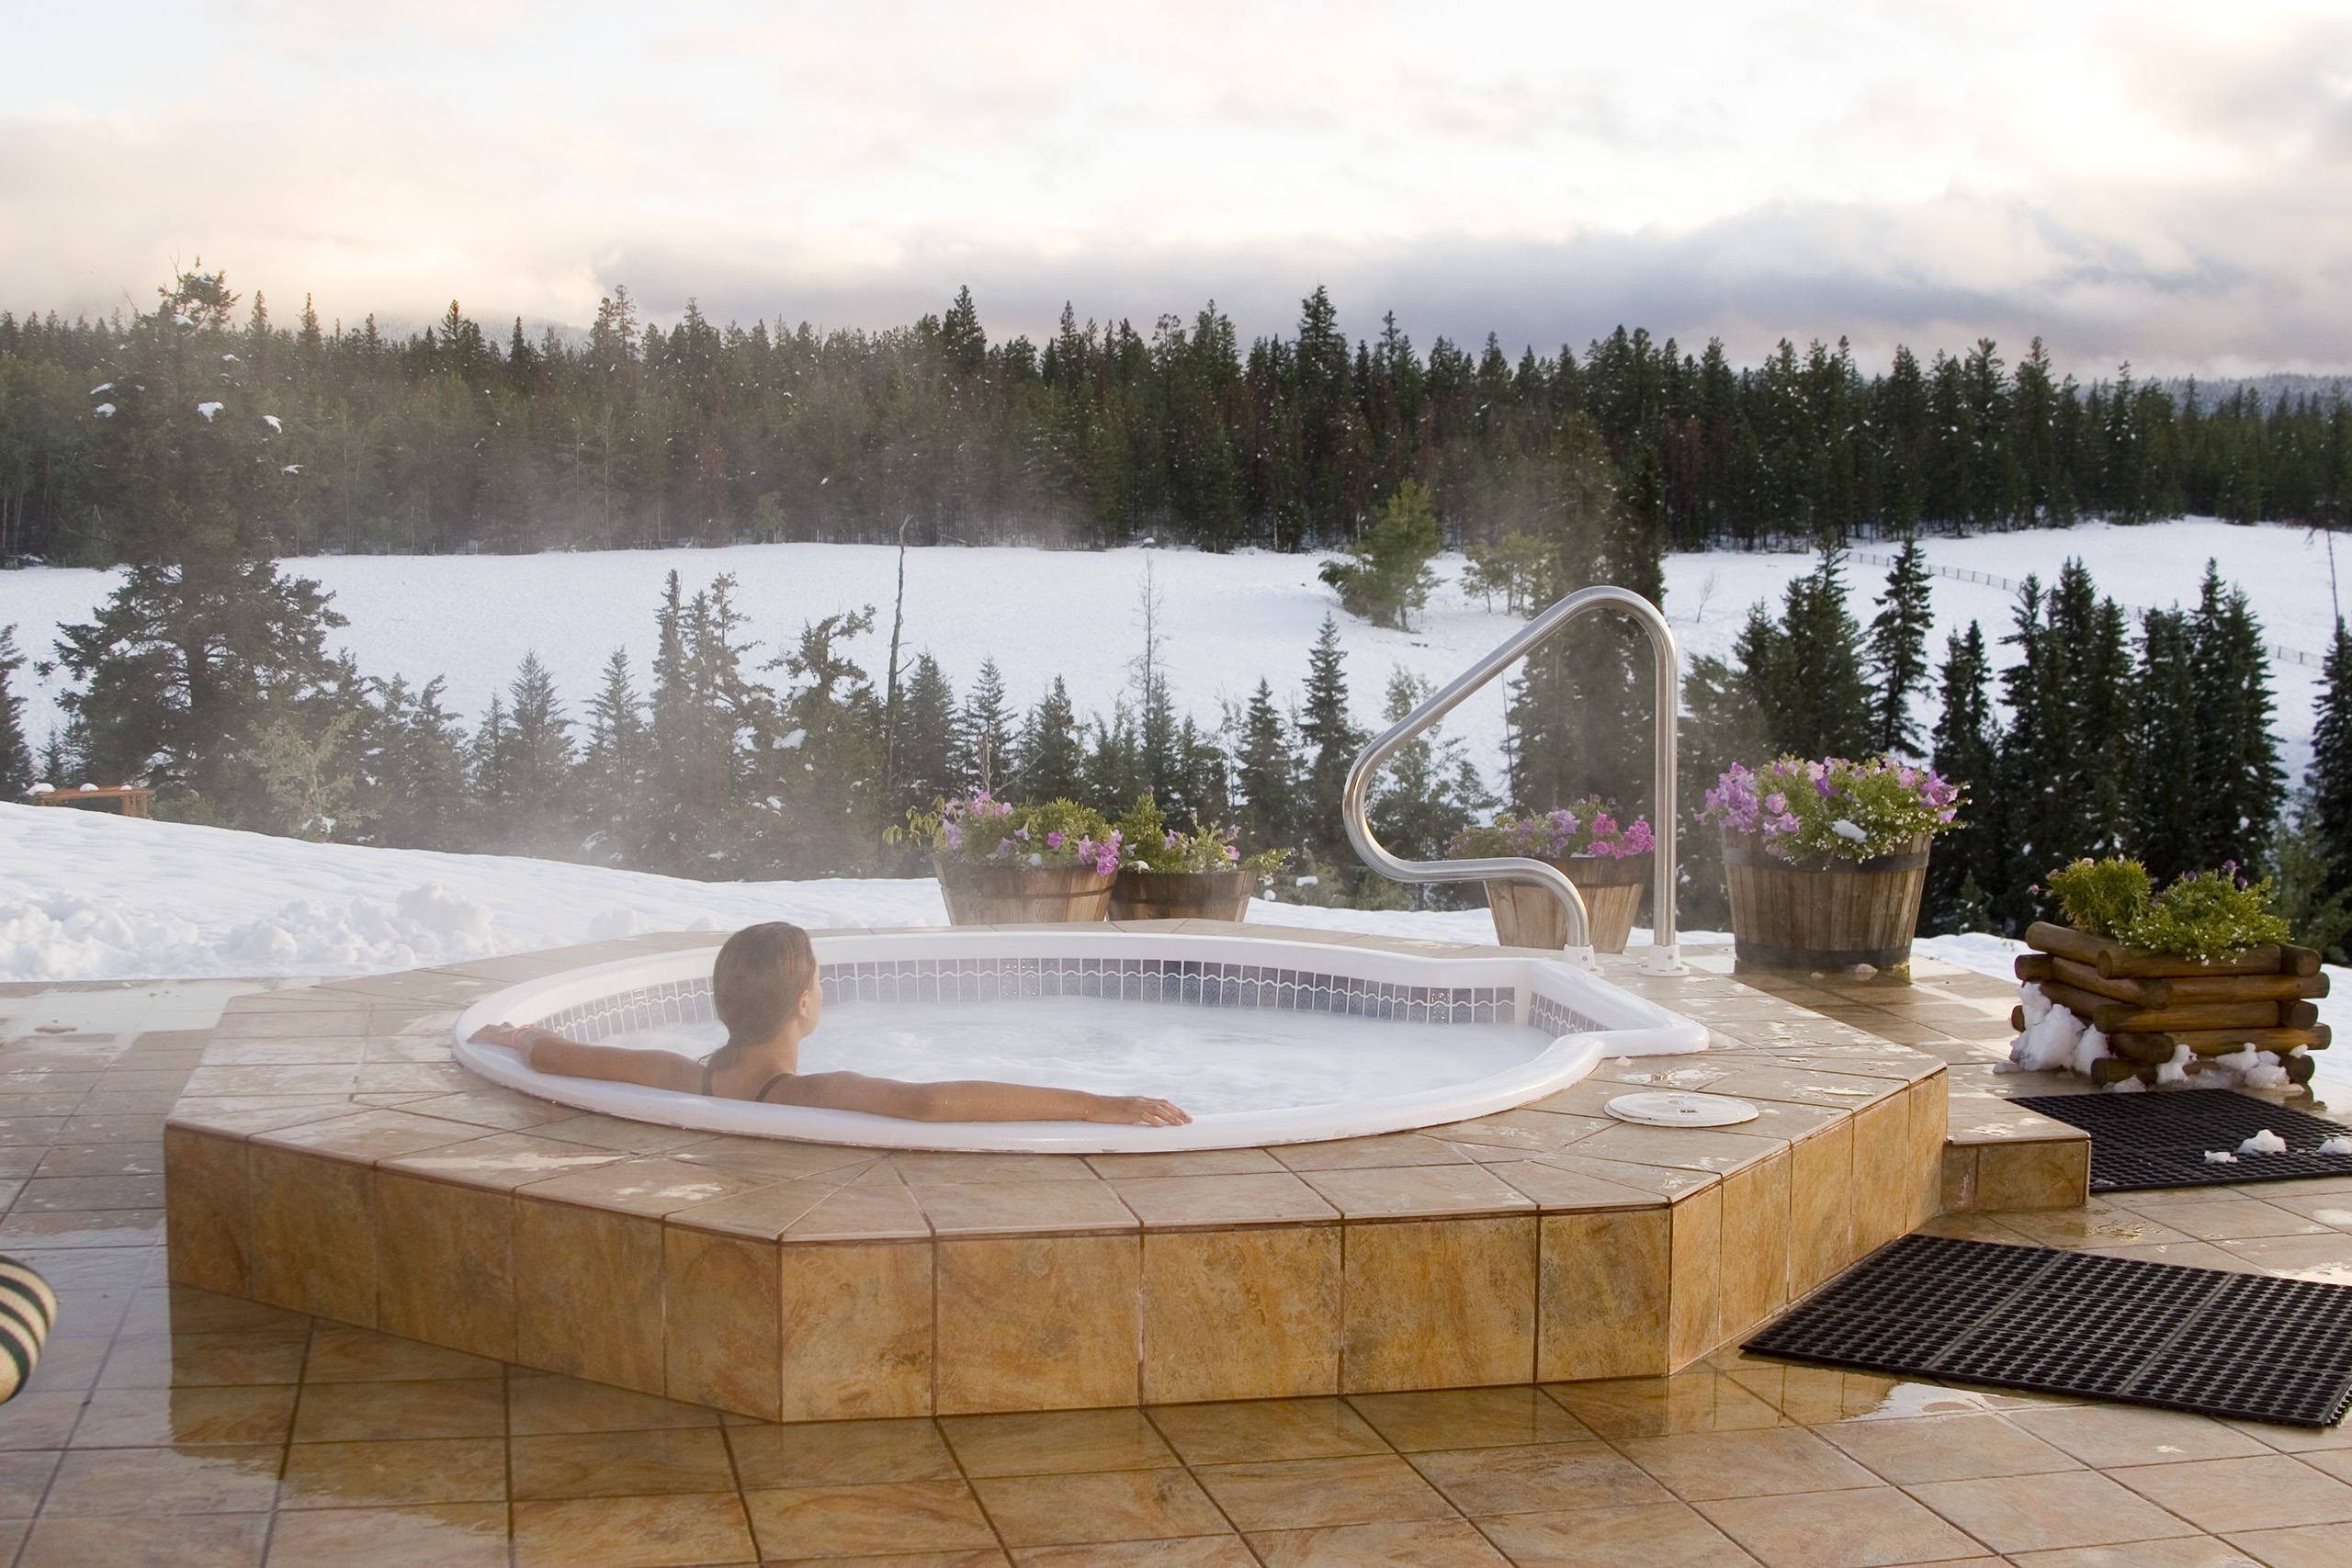 plain tubs therapurespa perfect hot design of jacuzzi portable amazon maintenance las com inflatable luxury amusing outdoor from person ideas vegas tips tub cleaning